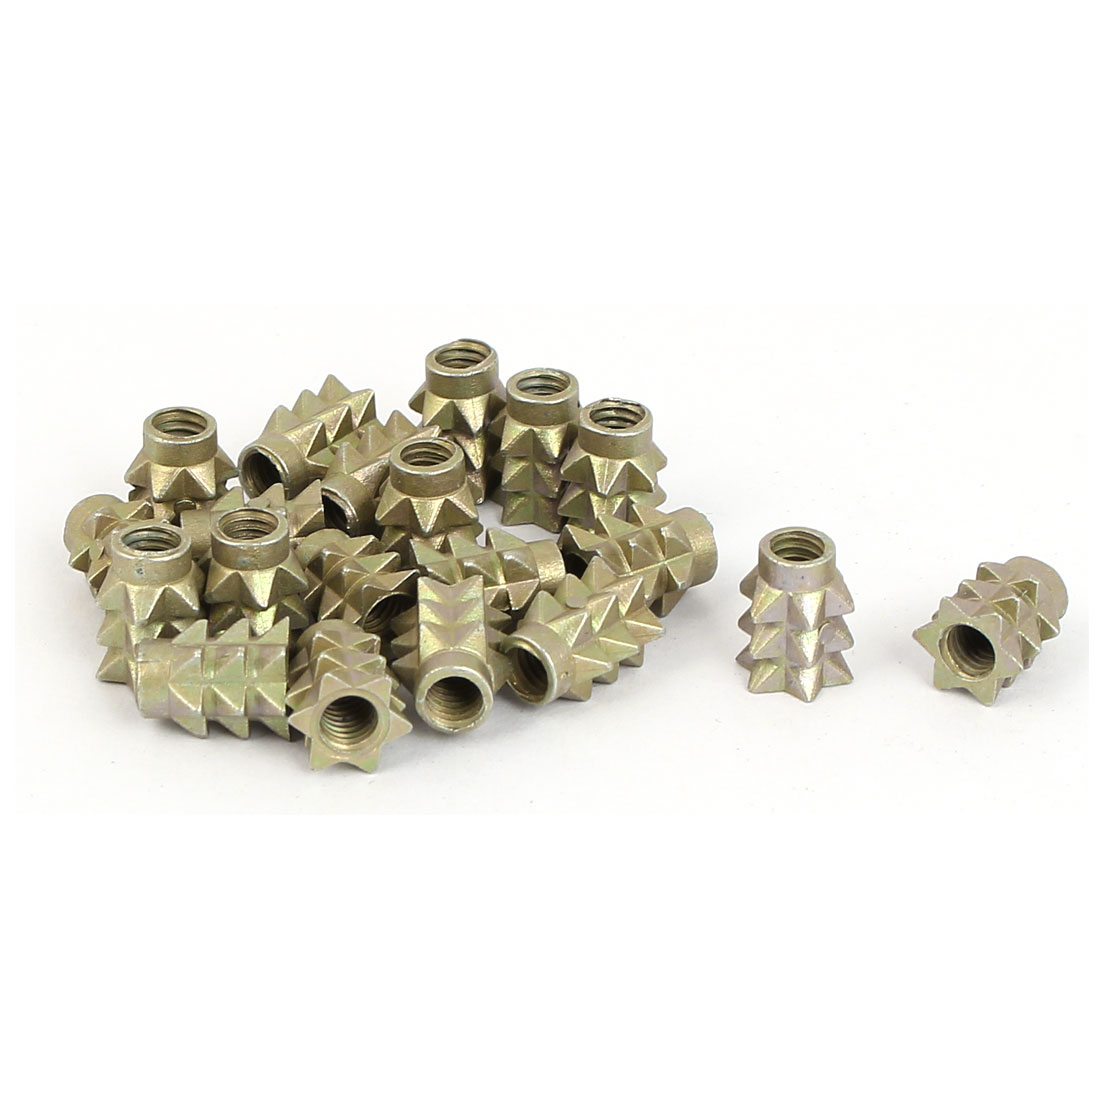 M4 x 10mm 0.7mm Thread Pitch Barbed Body Insert Nuts Fastener Bronze Tone 20 Pcs